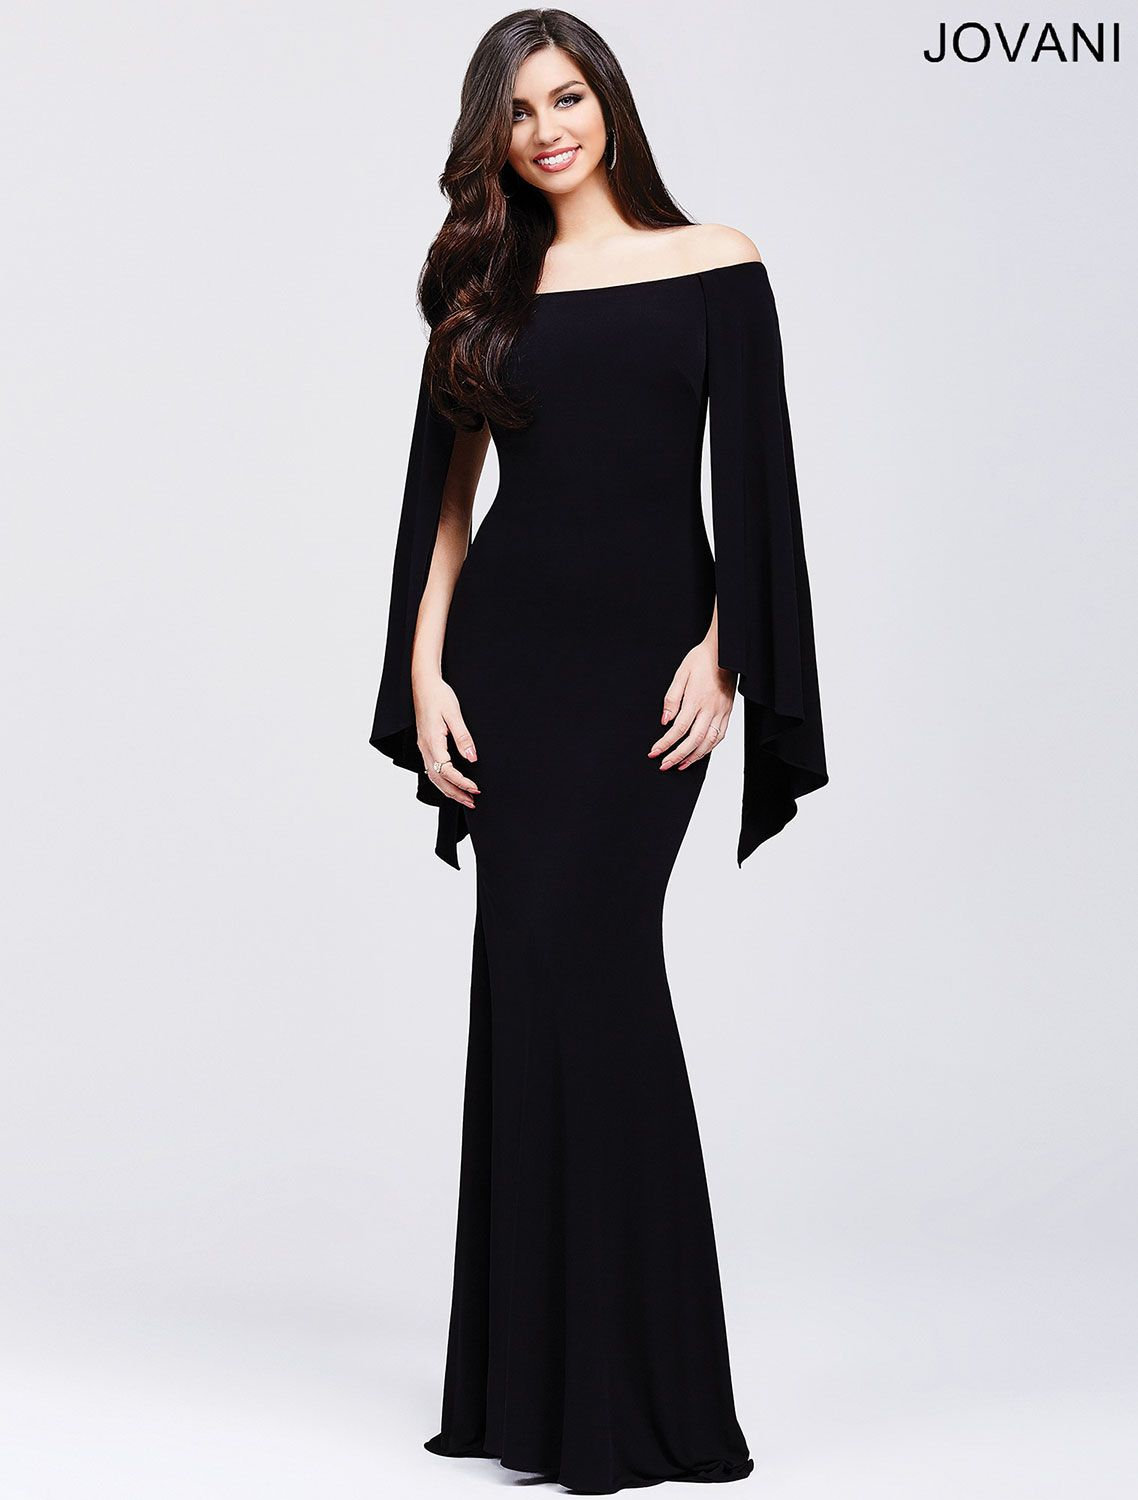 Stunning off the shoulder form fitting dress features hanging ...